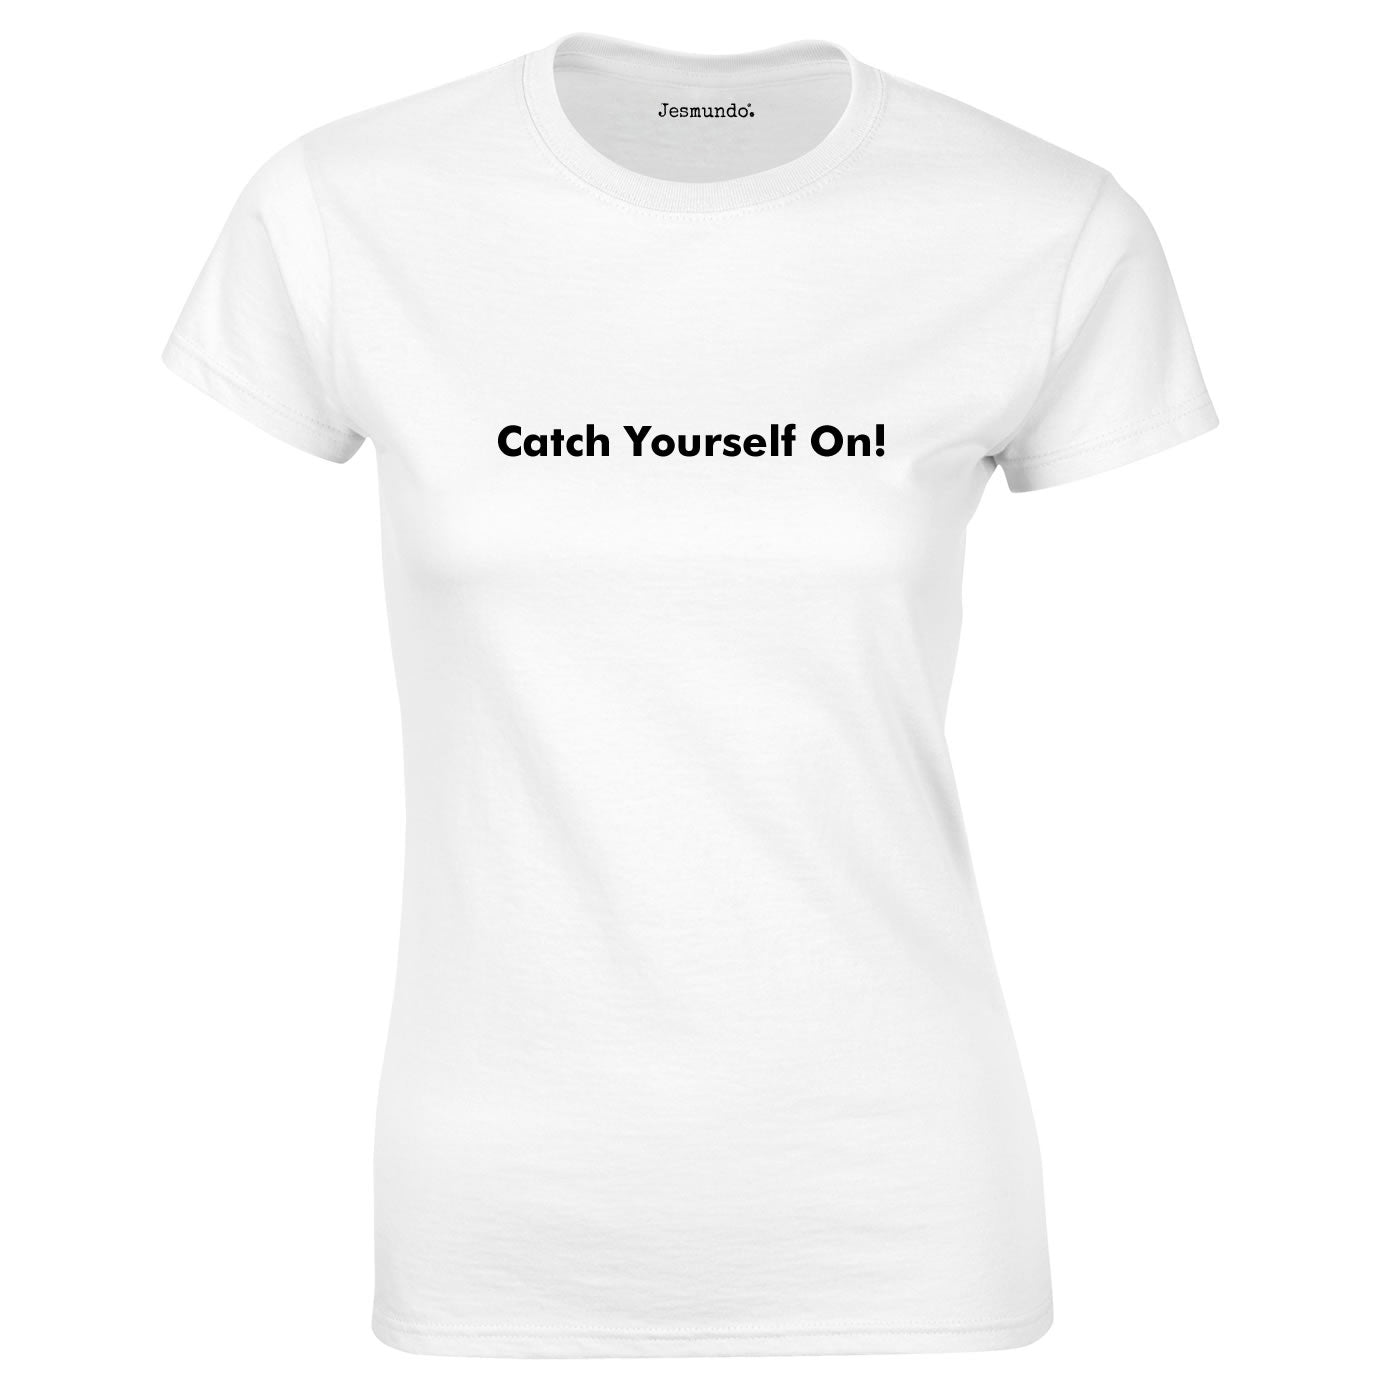 Catch Yourself On T Shirt